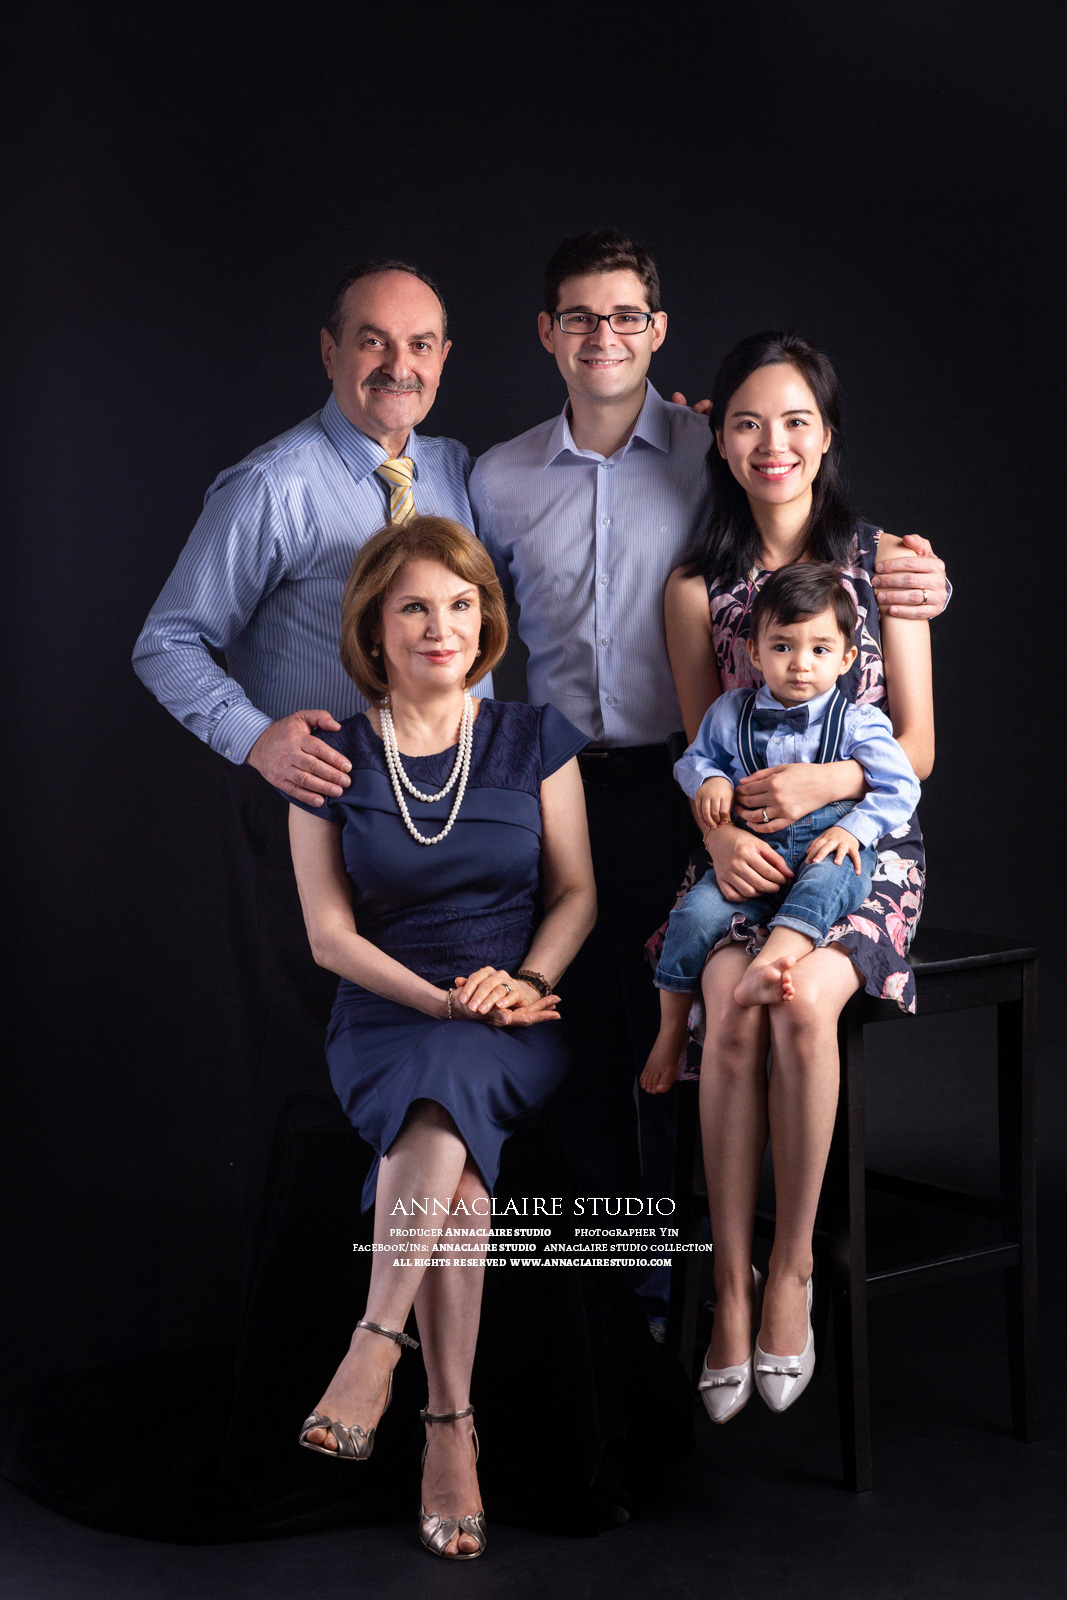 family photo  by AnnaClaire Studio (8 of 9).JPG